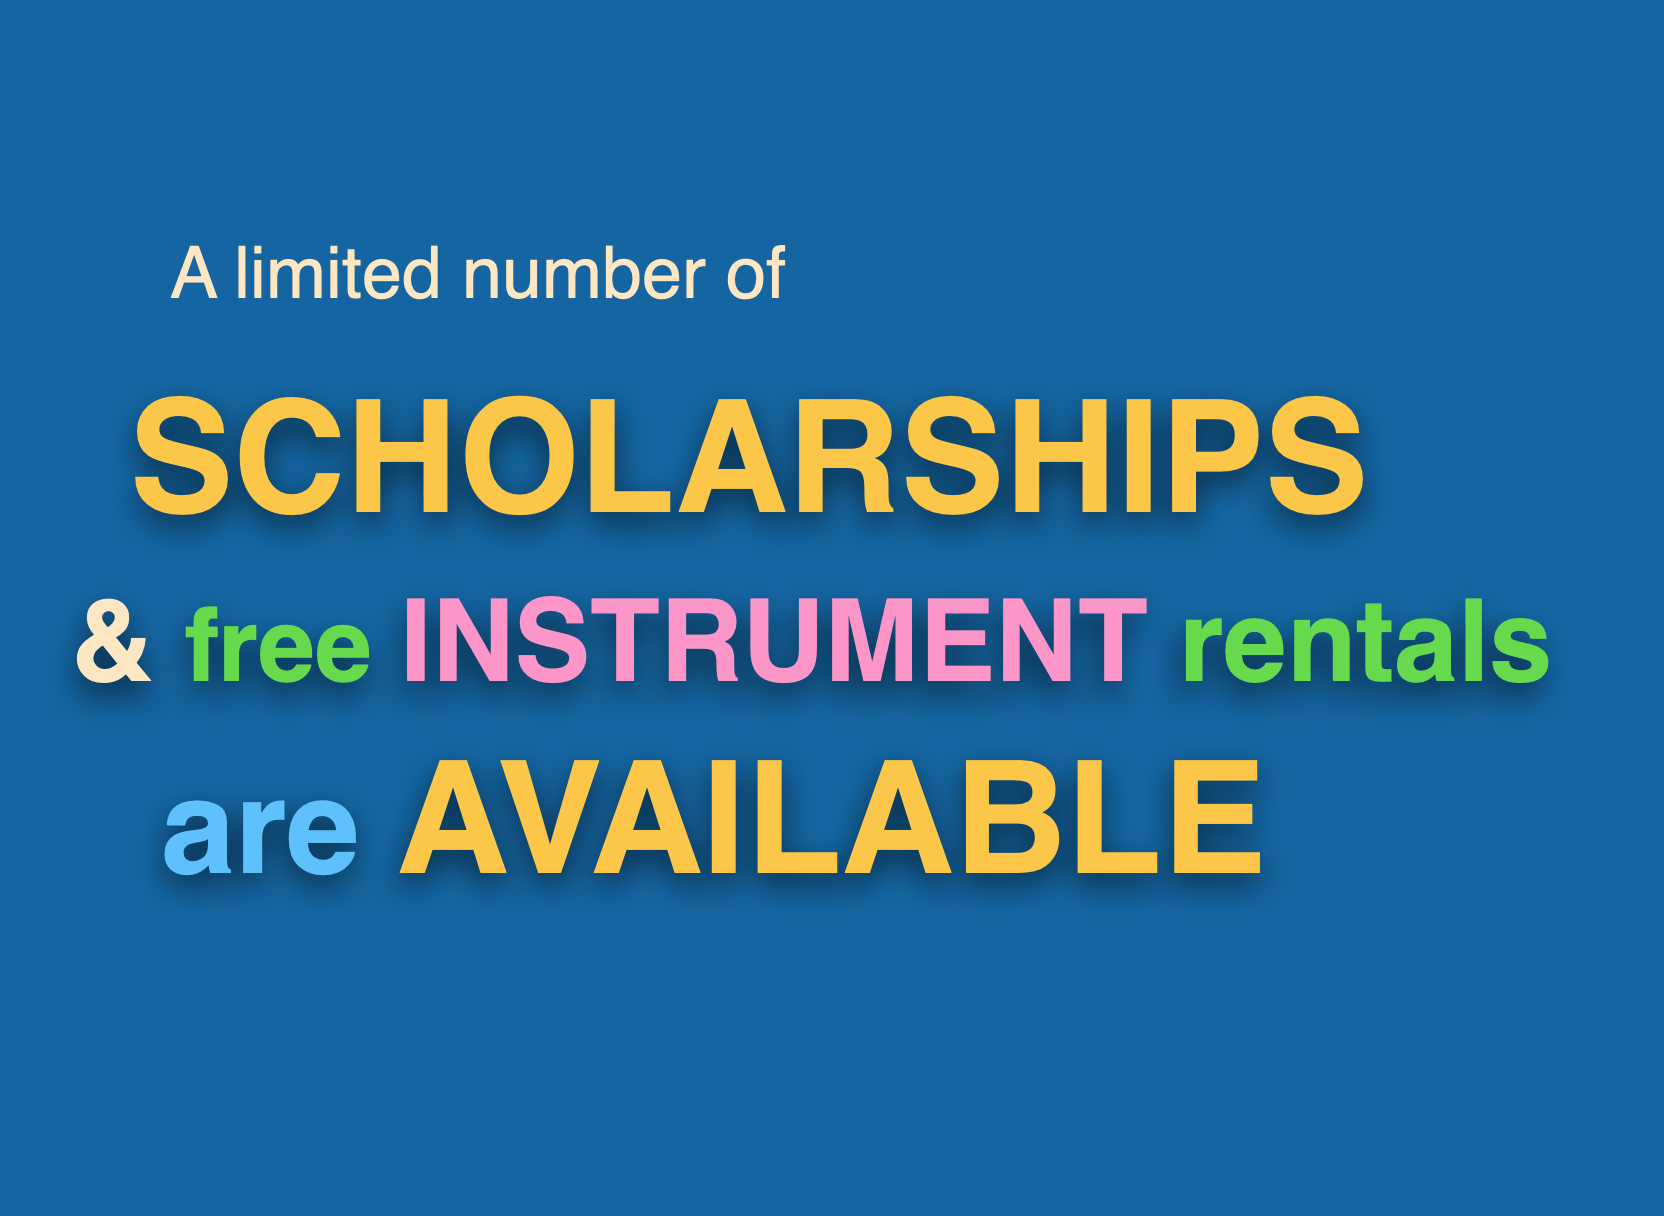 A limited number of scholarships and free instrument rentals are available.